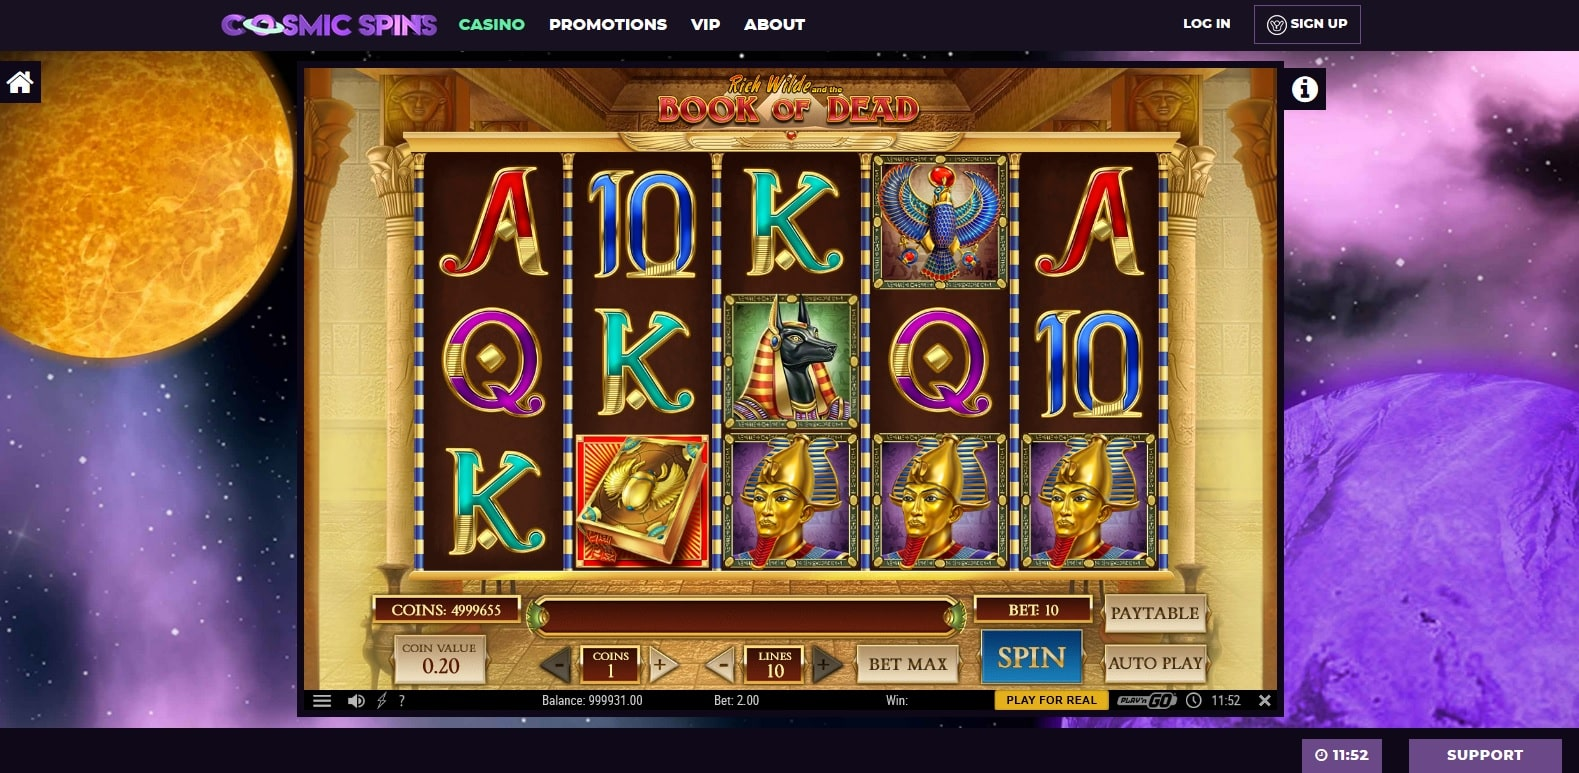 cosmic spins casino gameplay book of dead slot